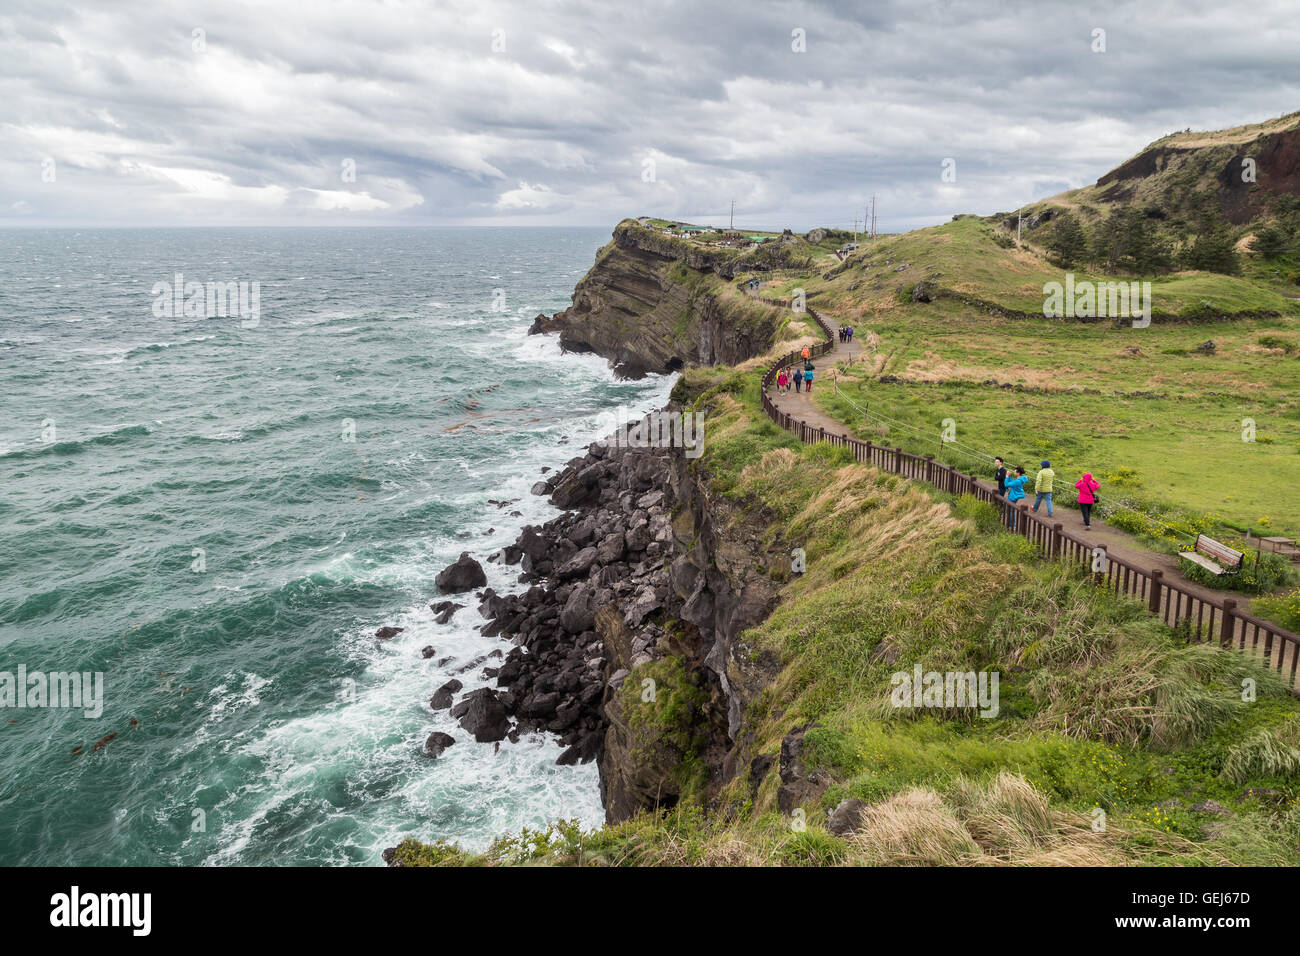 View of people and steep and rugged cliff next to the Songaksan Mountain on Jeju Island in South Korea. - Stock Image